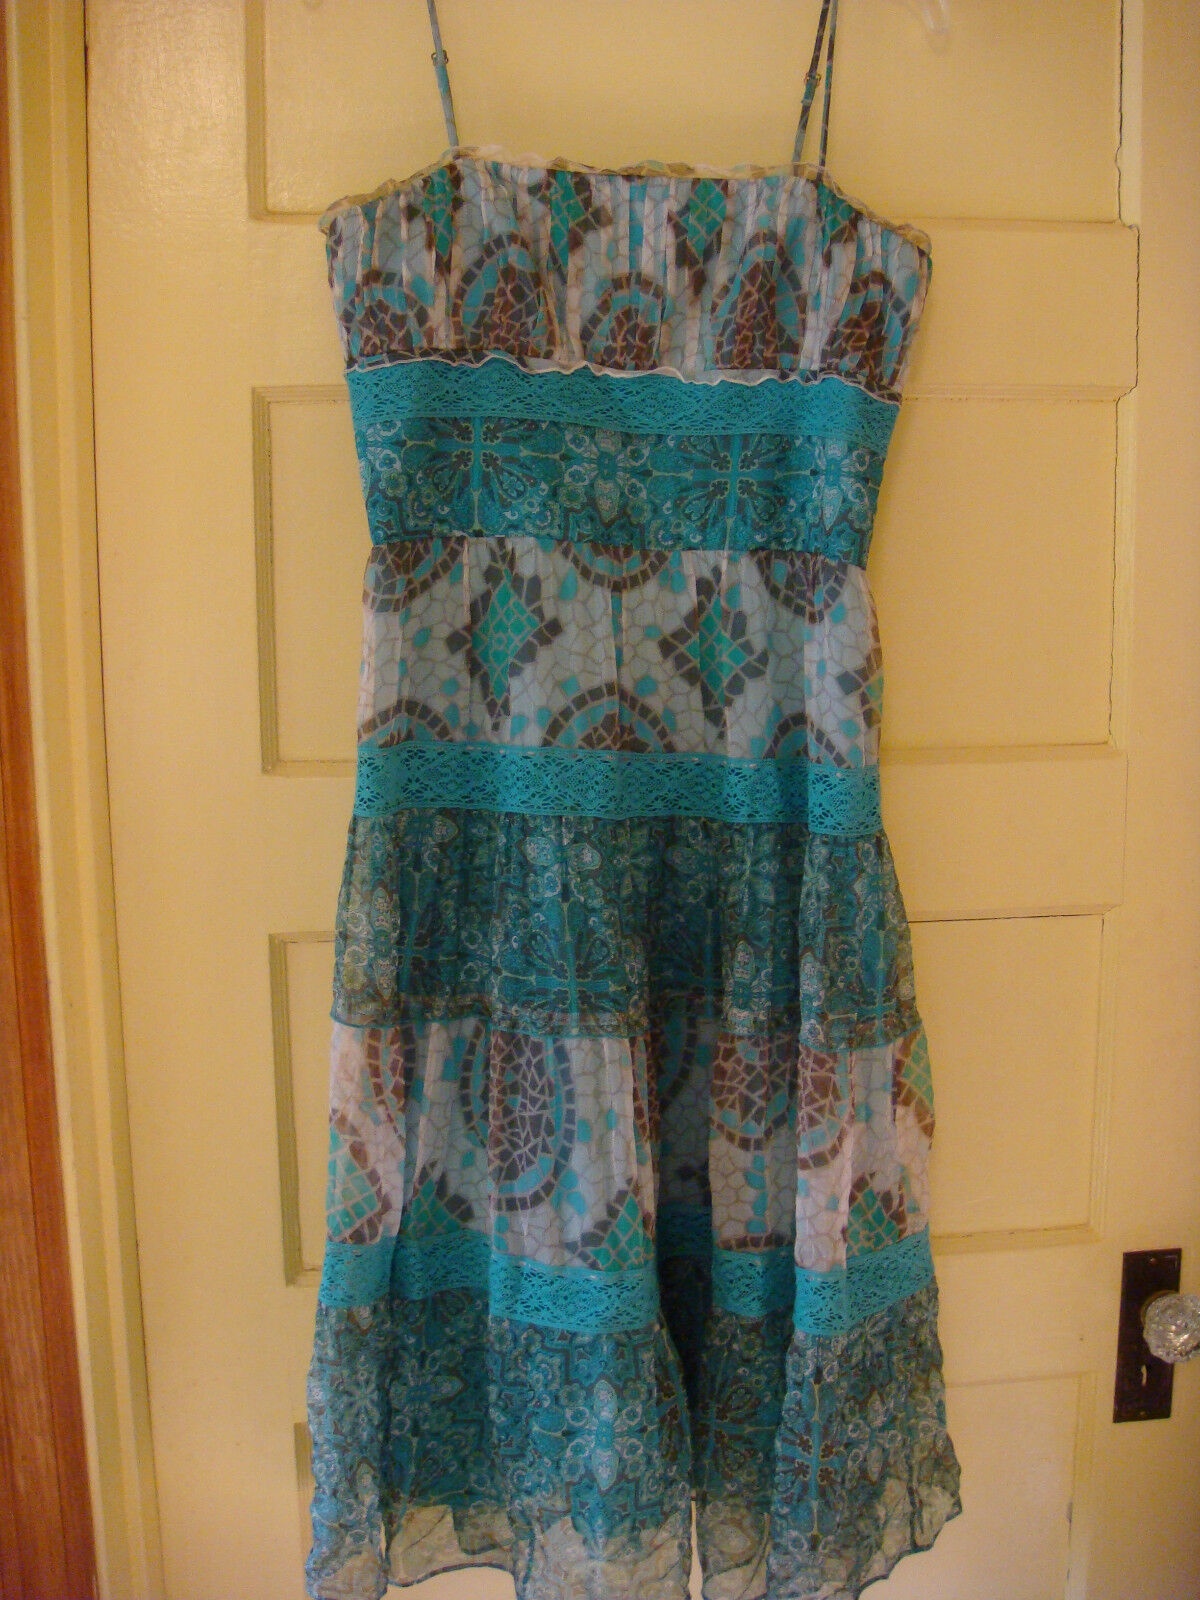 Beautiful Turquoise Mosaic Dress Silk Dress by Laundry Size 6